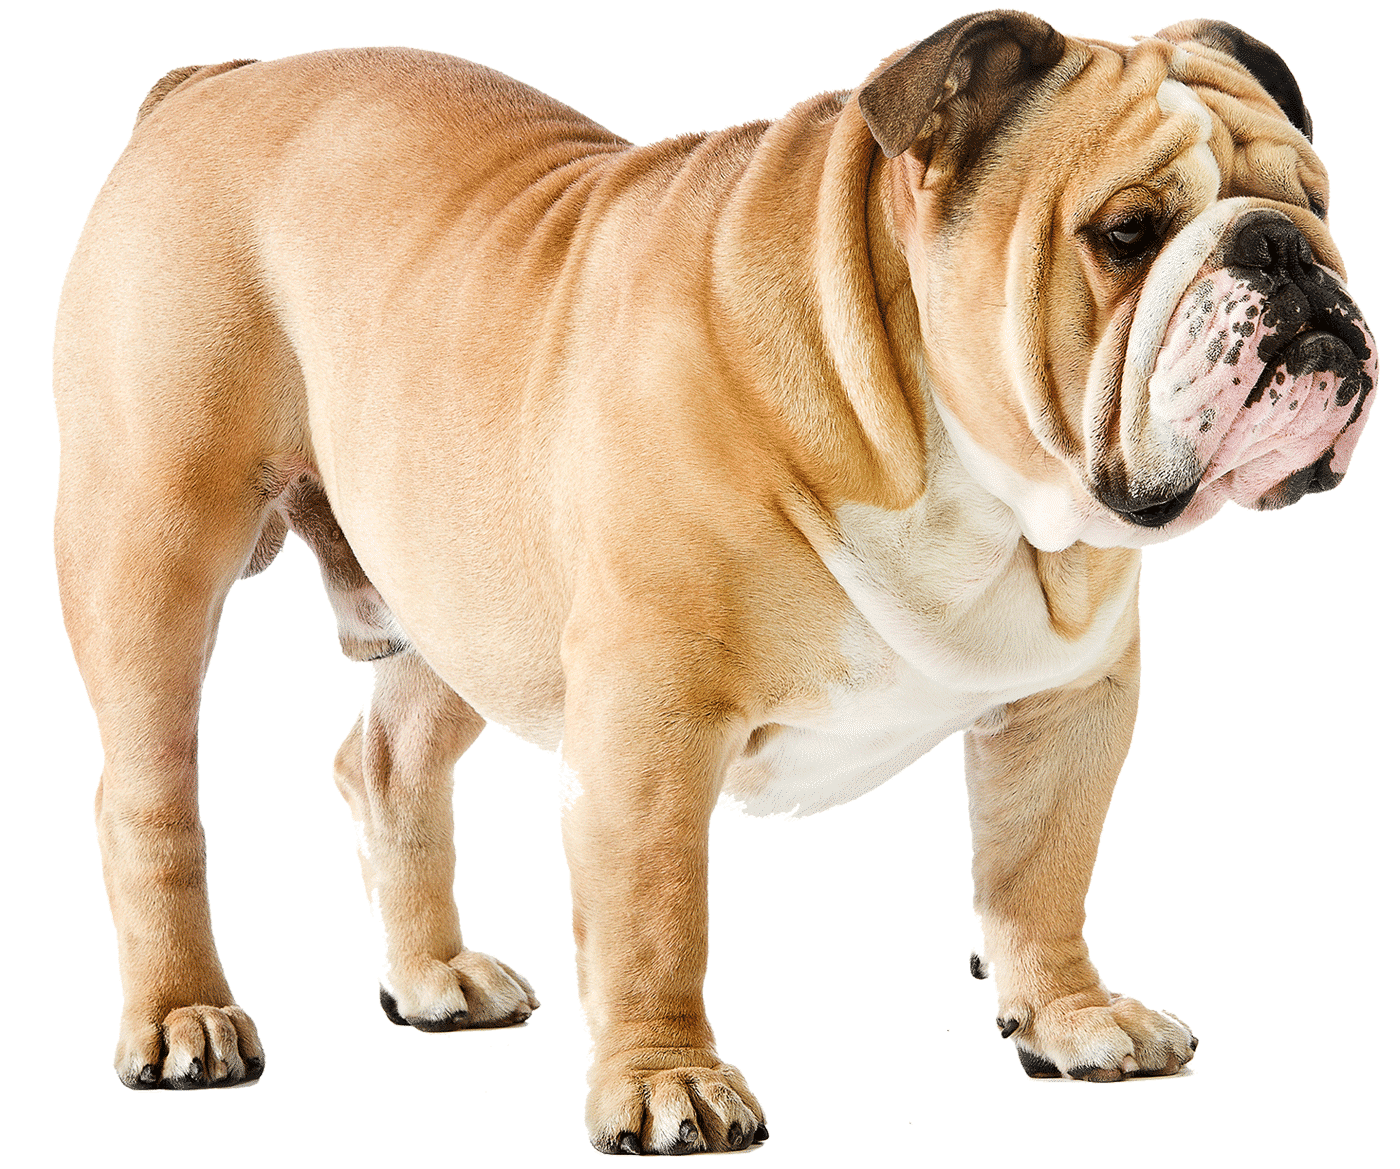 Dog png image | dog's puppy pictures free download🐕